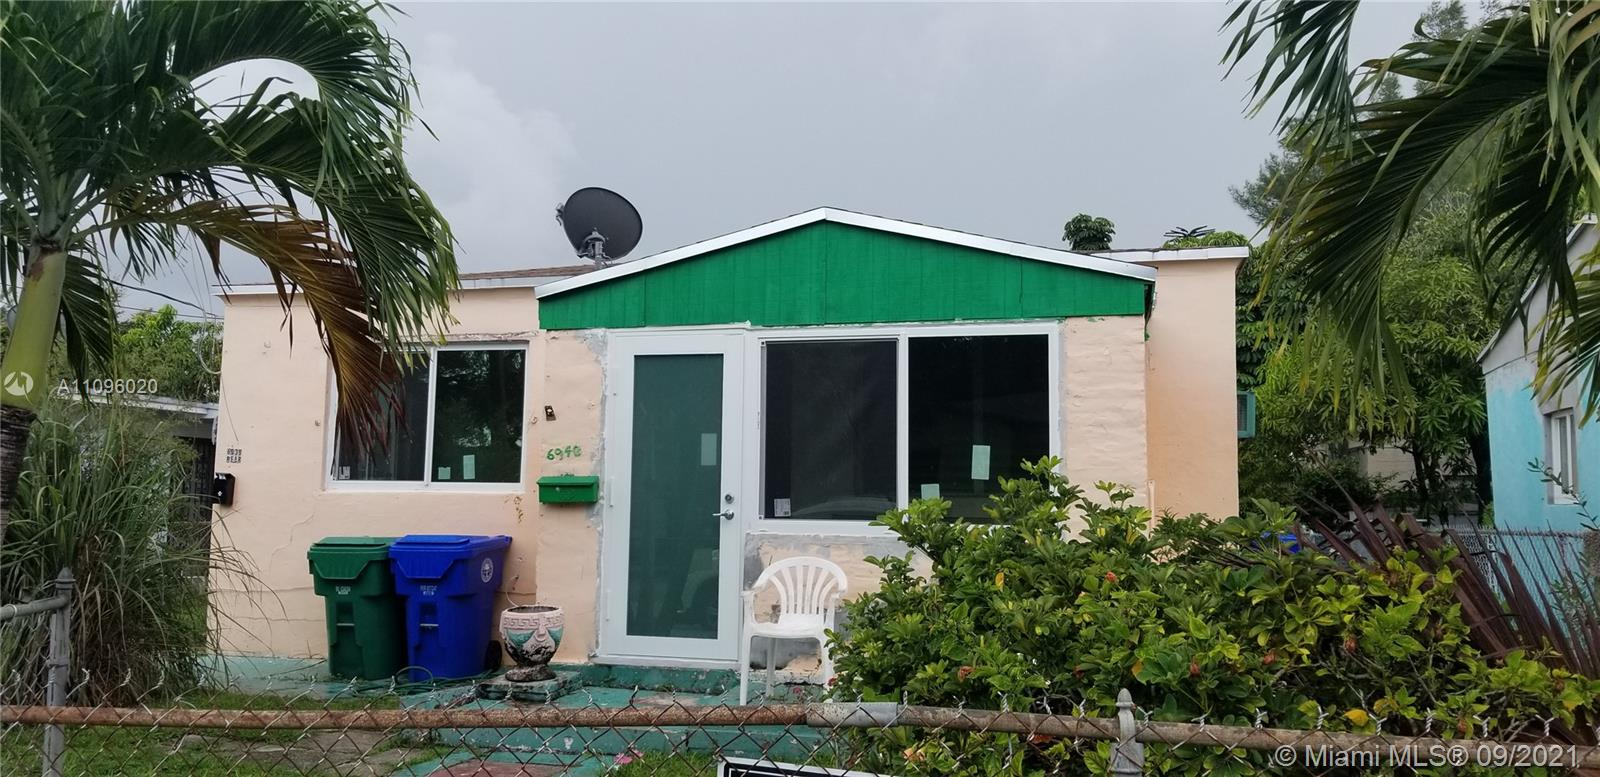 6938 NW 6th Ave, Miami, Florida 33150, ,Residential Income,For Sale,6th Ave,A11096020